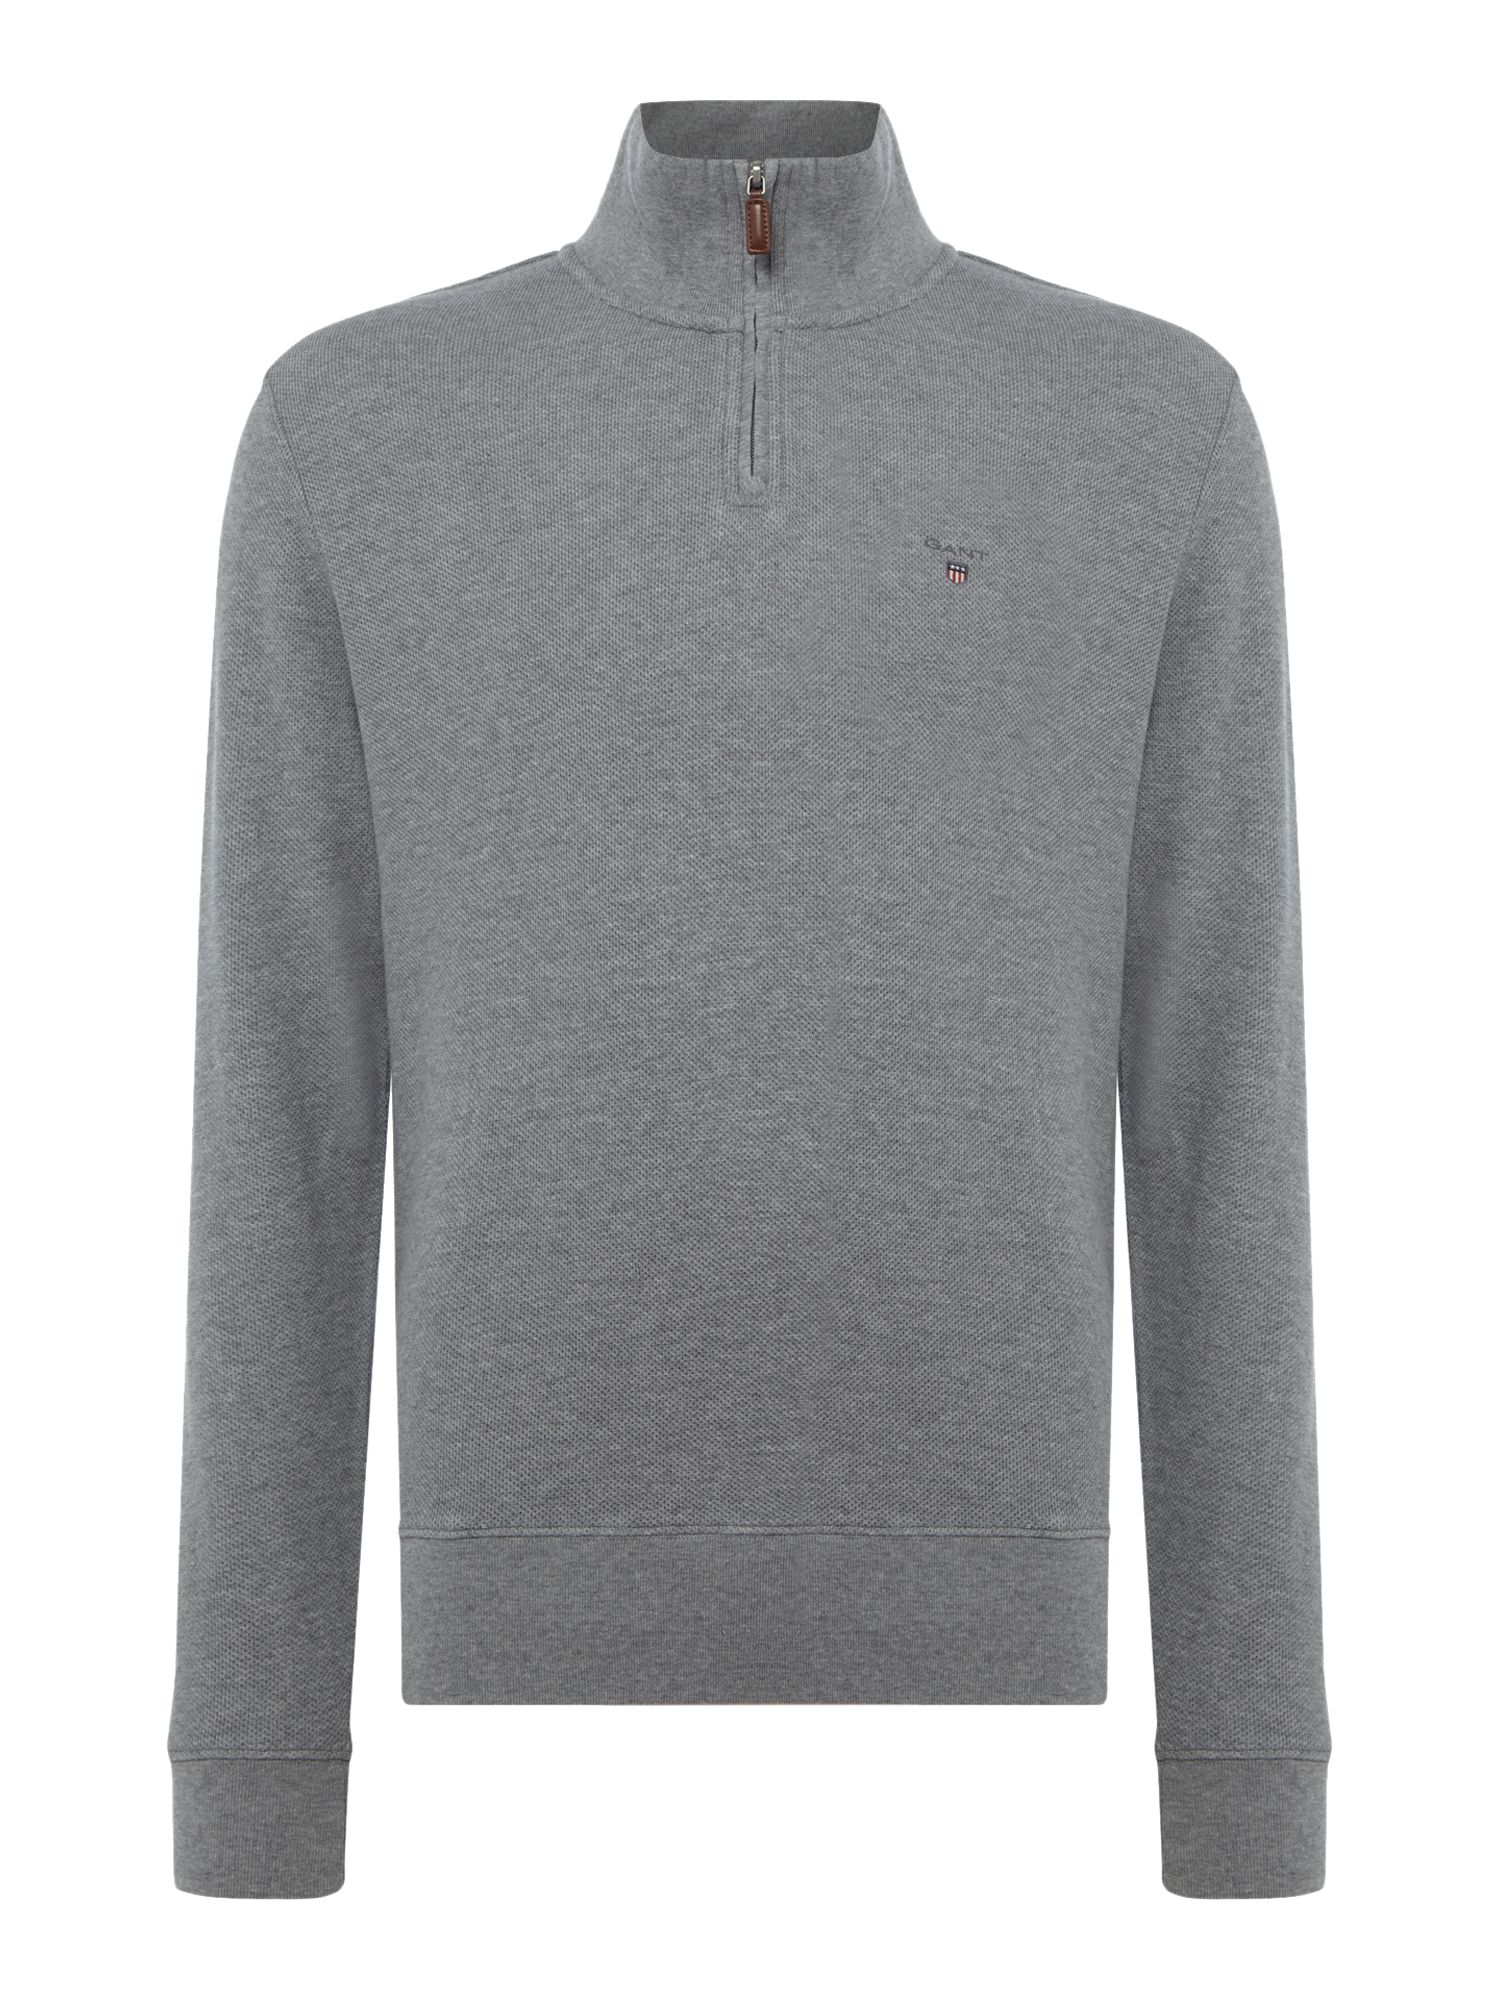 Men's Gant Honey-Comb Half-Zip Sweatshirt, Grey